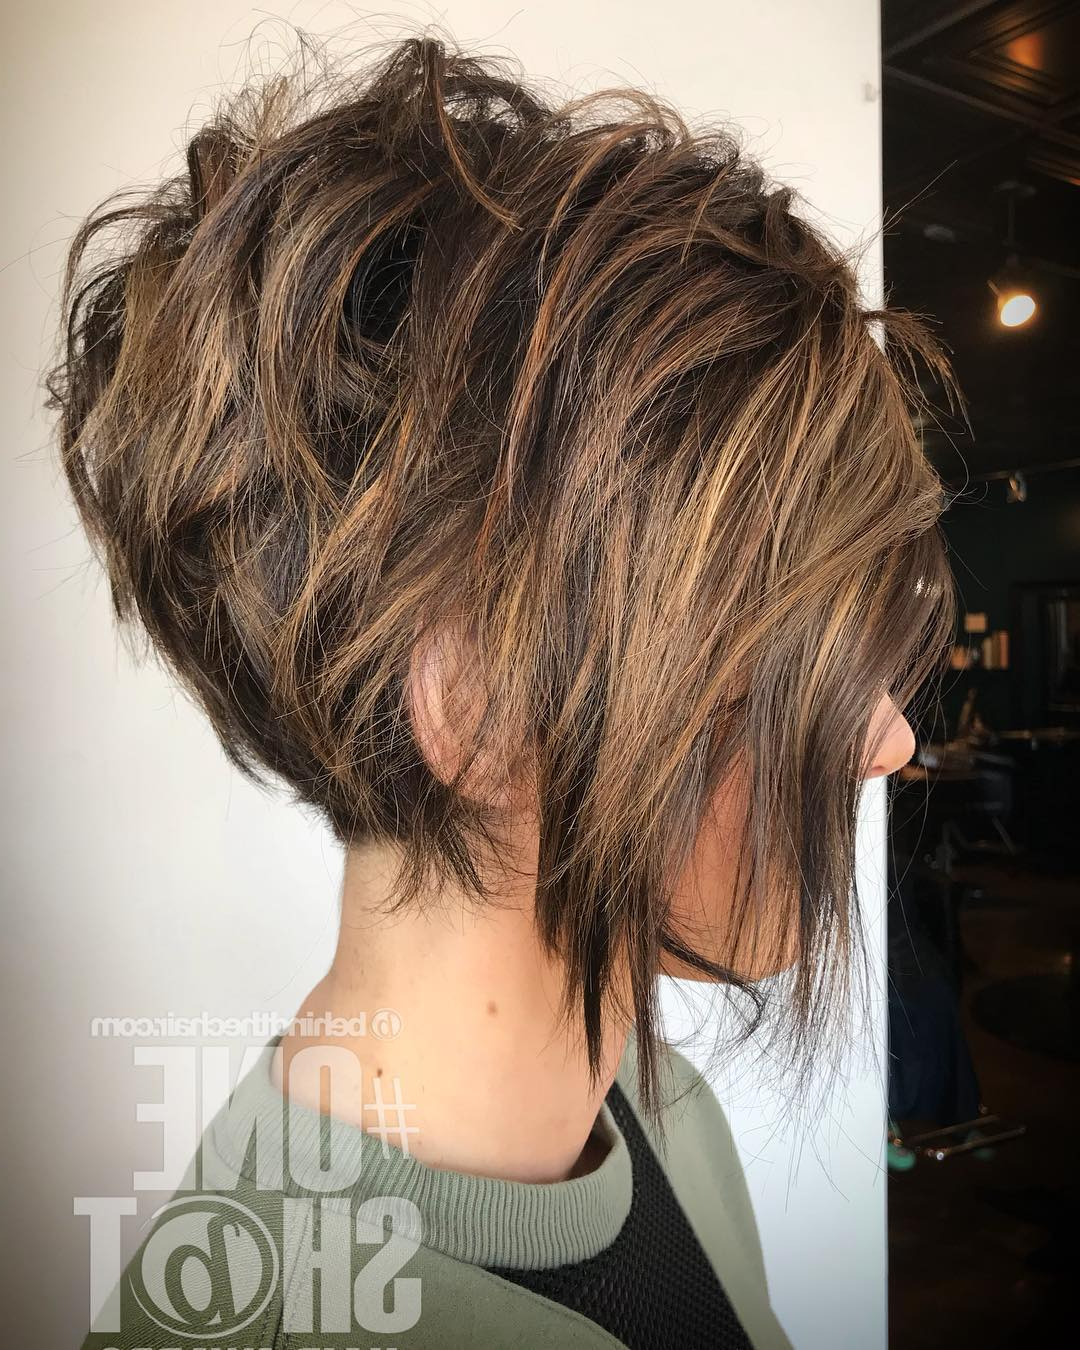 10 Trendy Messy Bob Hairstyles And Haircuts, 2020 Female Regarding Popular Ombre Piecey Bob Hairstyles (View 2 of 20)